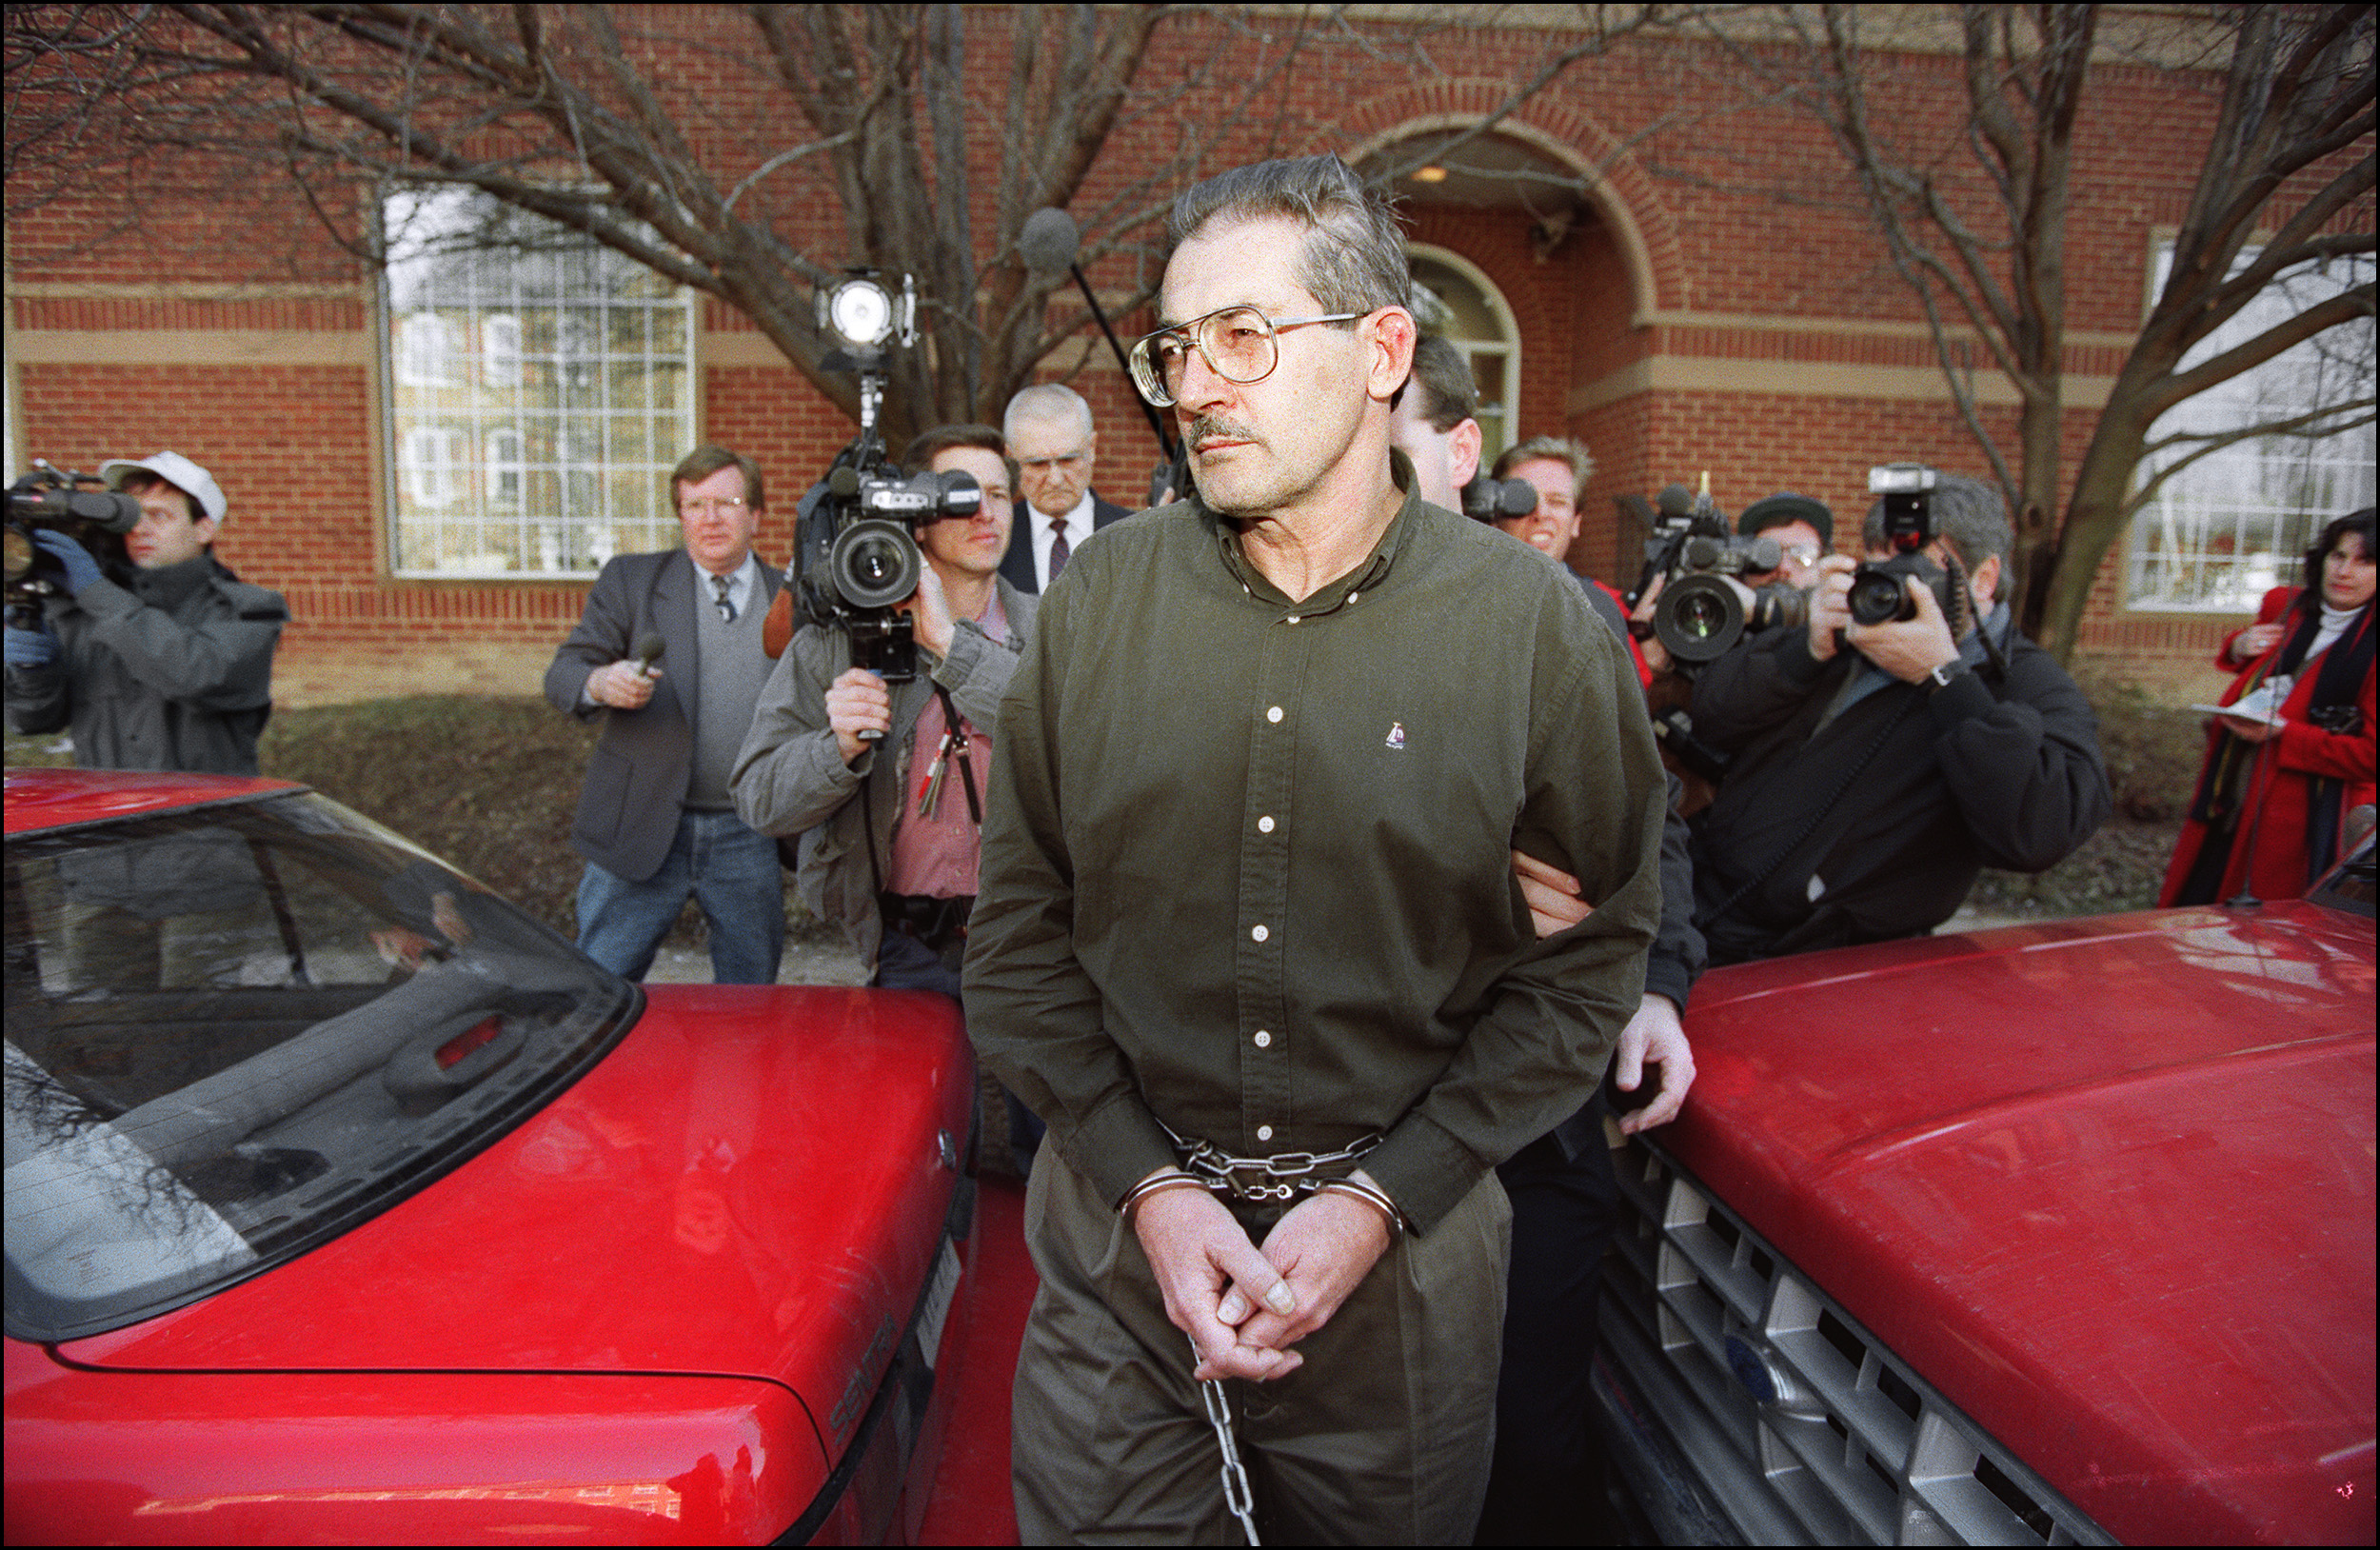 As a CIA officer, Aldrich Ames  was responsible for recruiting Russian officers. In an ironic twist, Ames revealed the identities of some of the Russian agents recruited by the U.S.—some were arrested and executed by the KGB.  Ames was paid over $1.8 million by the Soviets during his four years as a spy. He's currently serving a life sentence in Pennsylvania.